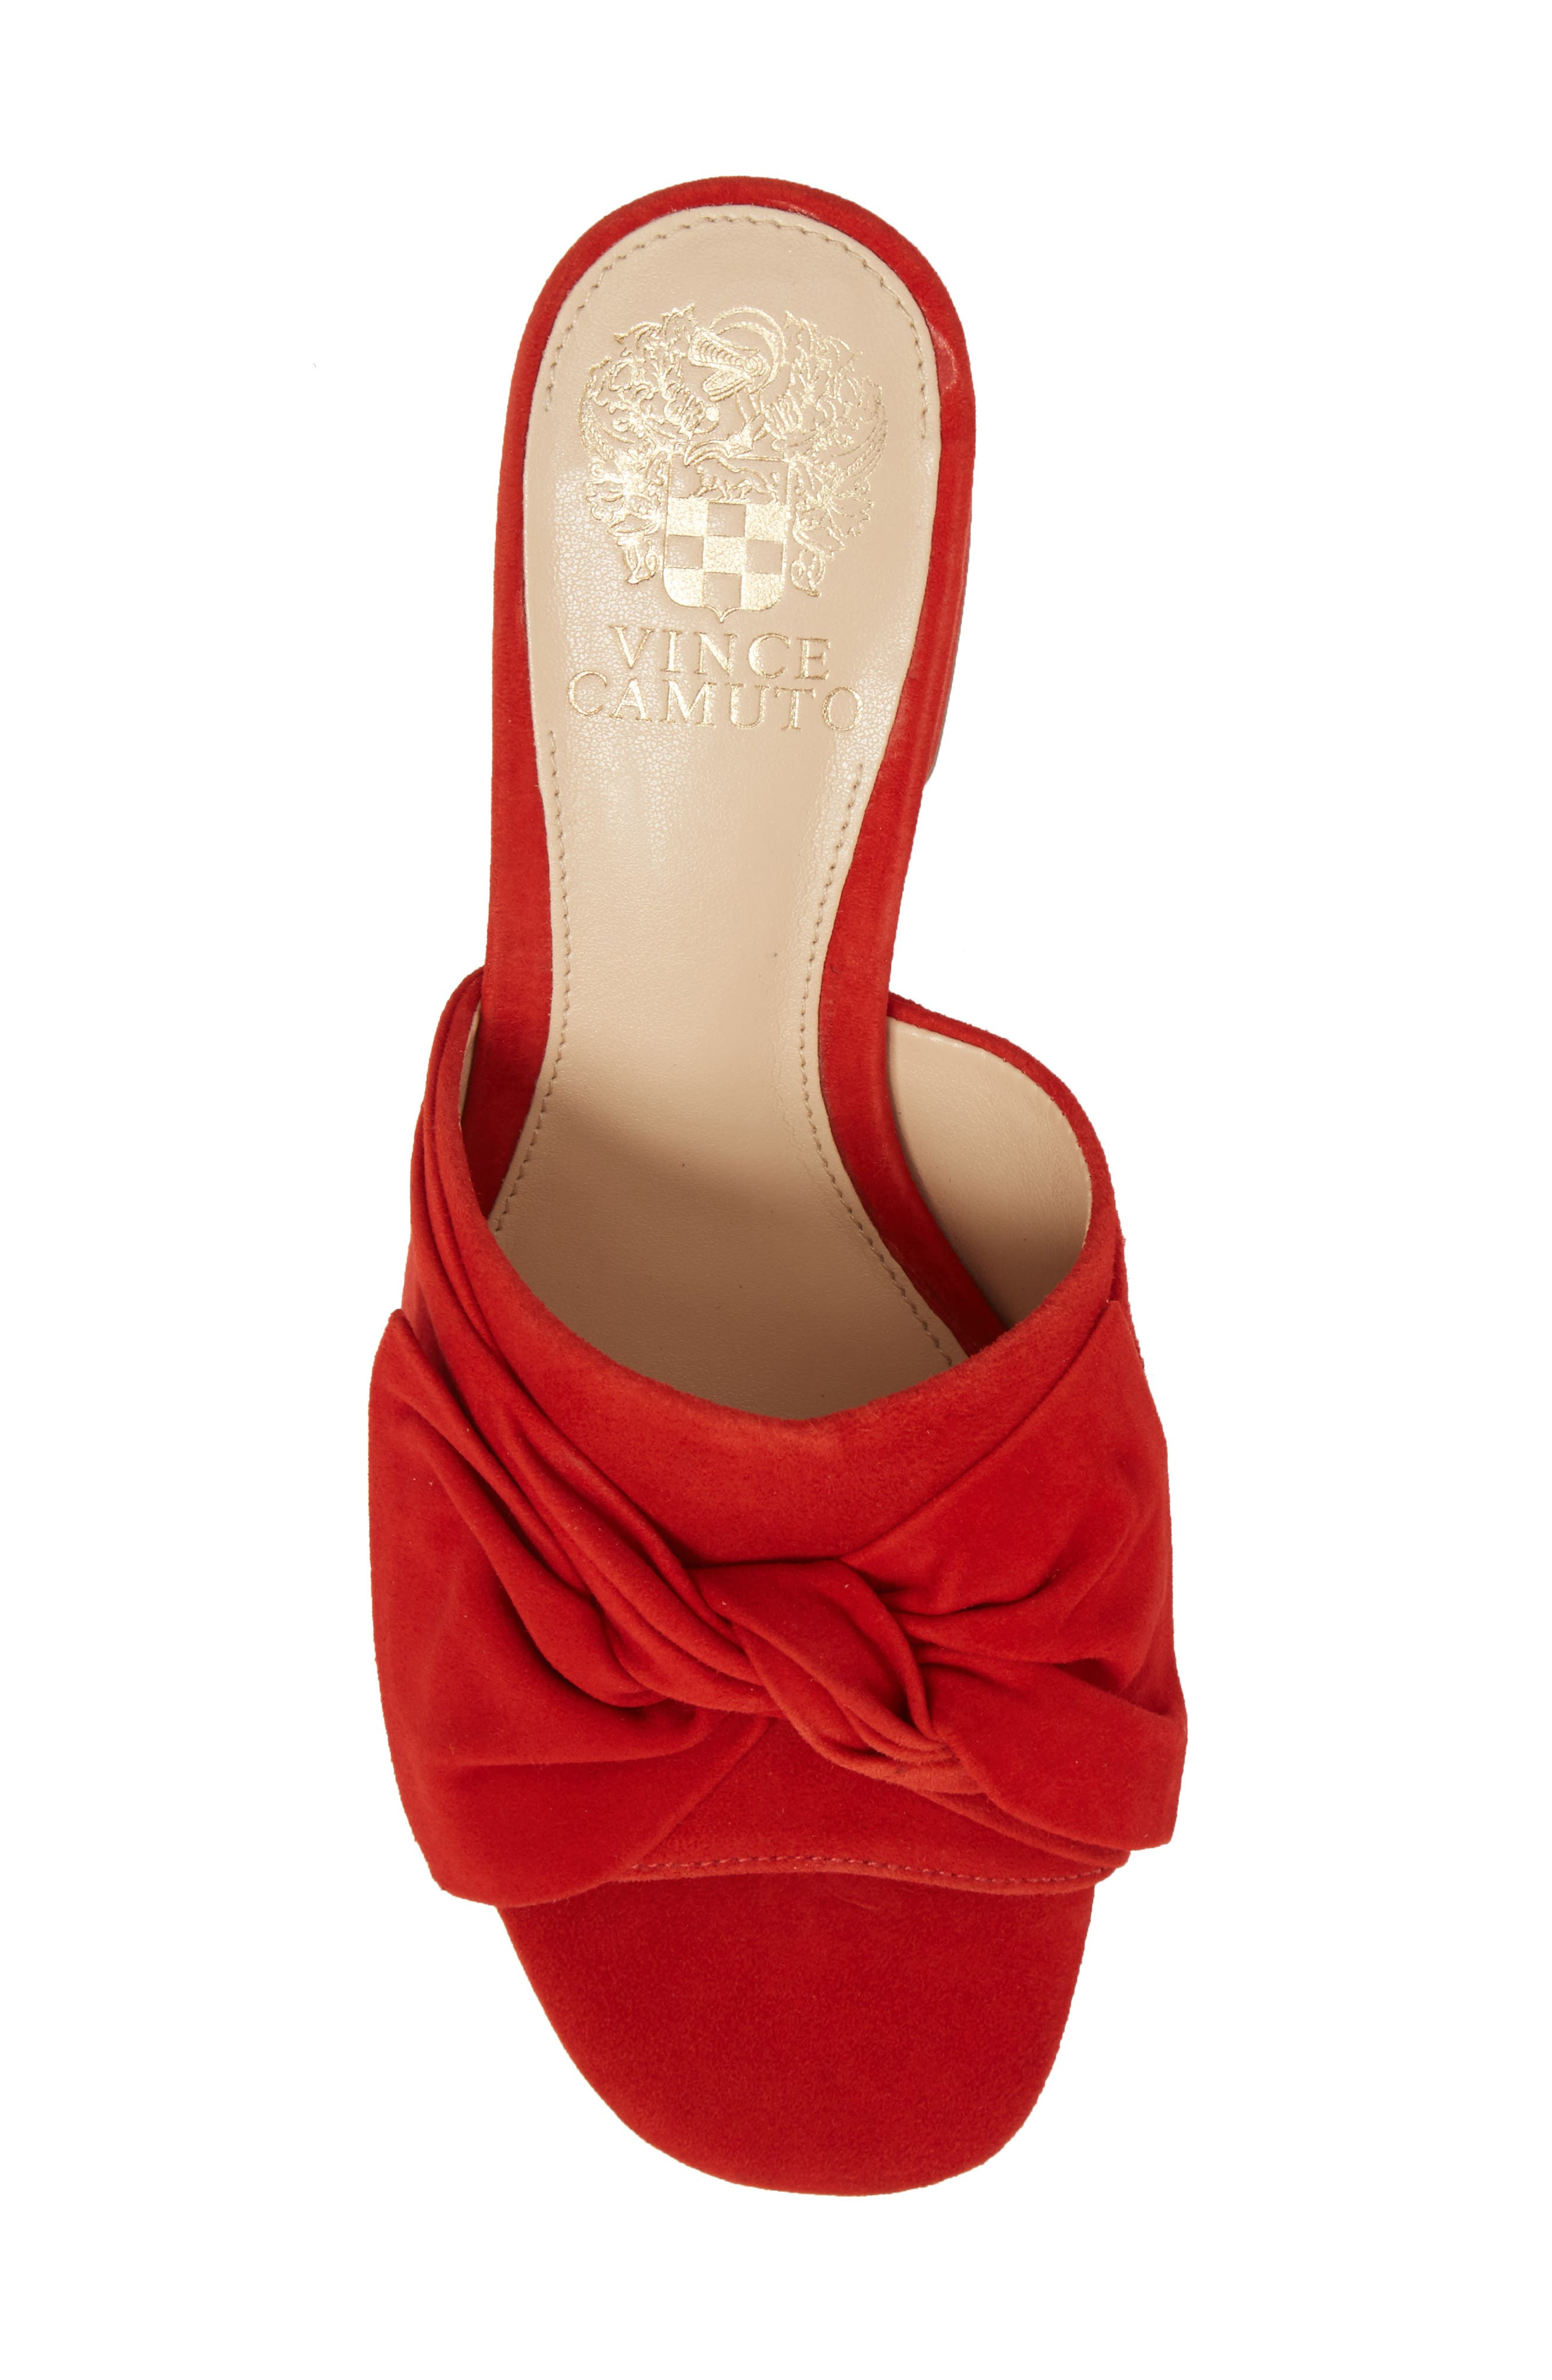 Sharrey Sandal,                             Alternate thumbnail 5, color,                             Red Hot Rio Suede